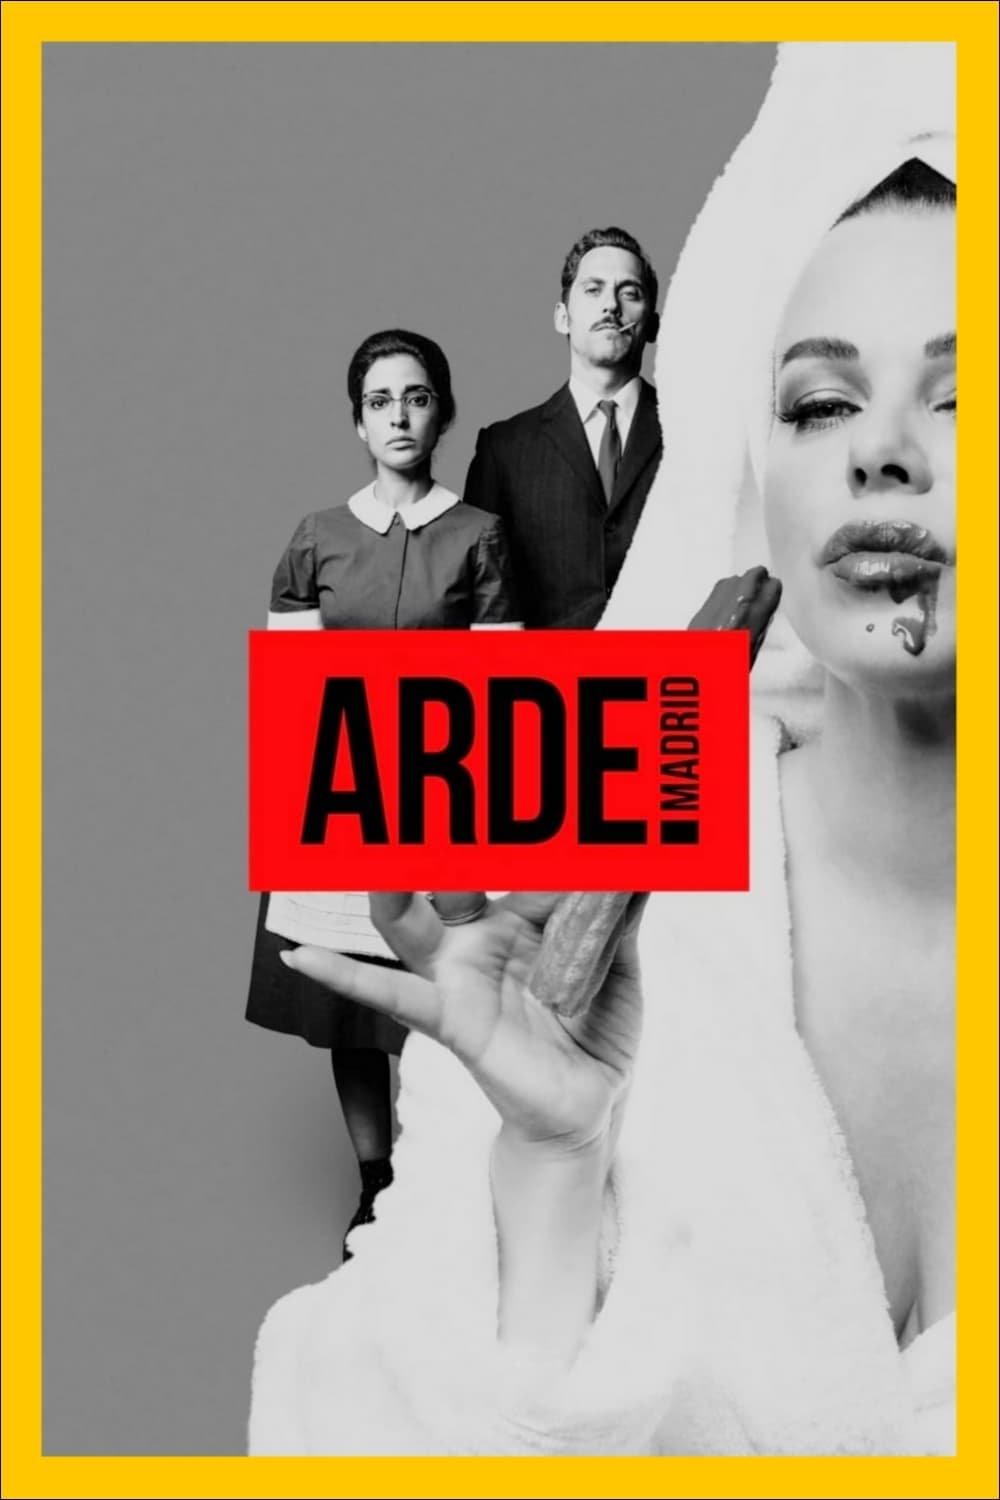 Arde Madrid TV Shows About 1960s